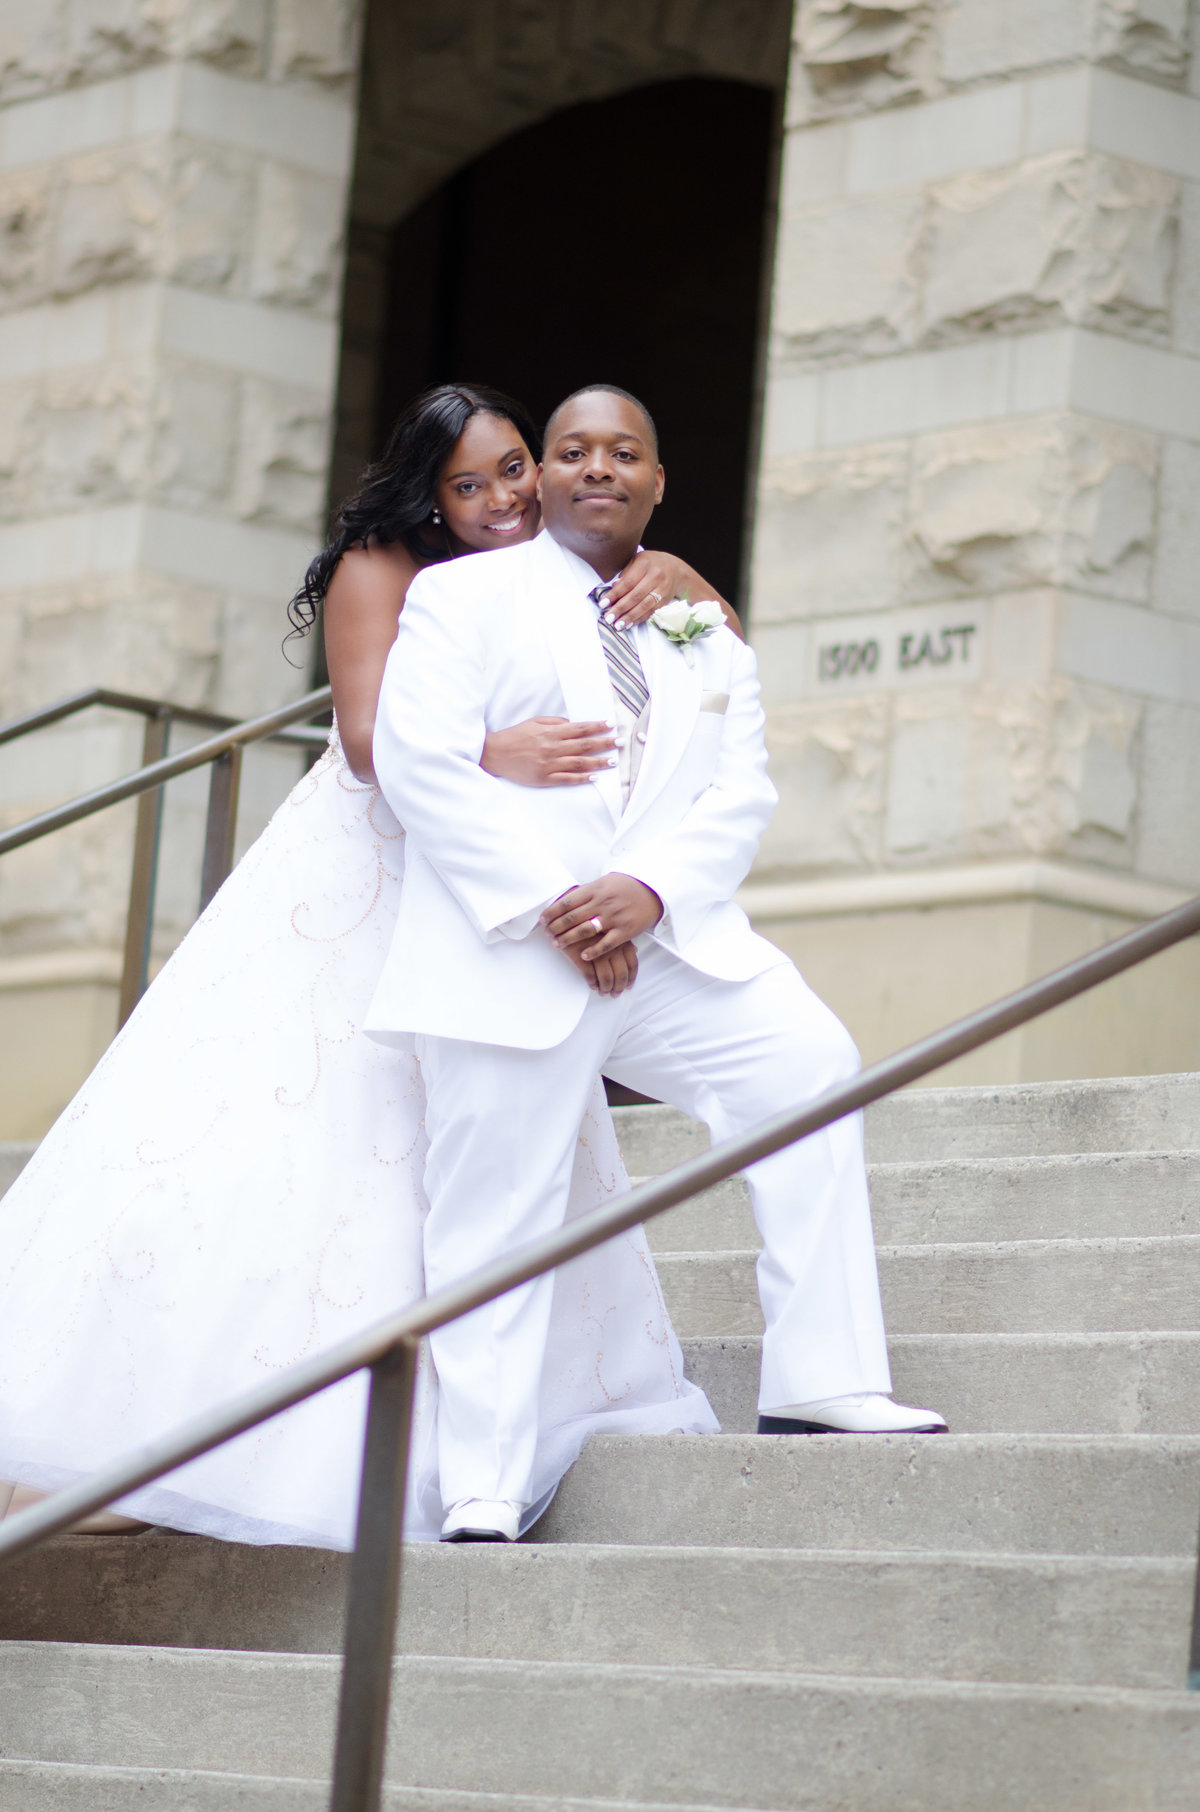 Roberts_Wedding_Uplifted_Photography-739